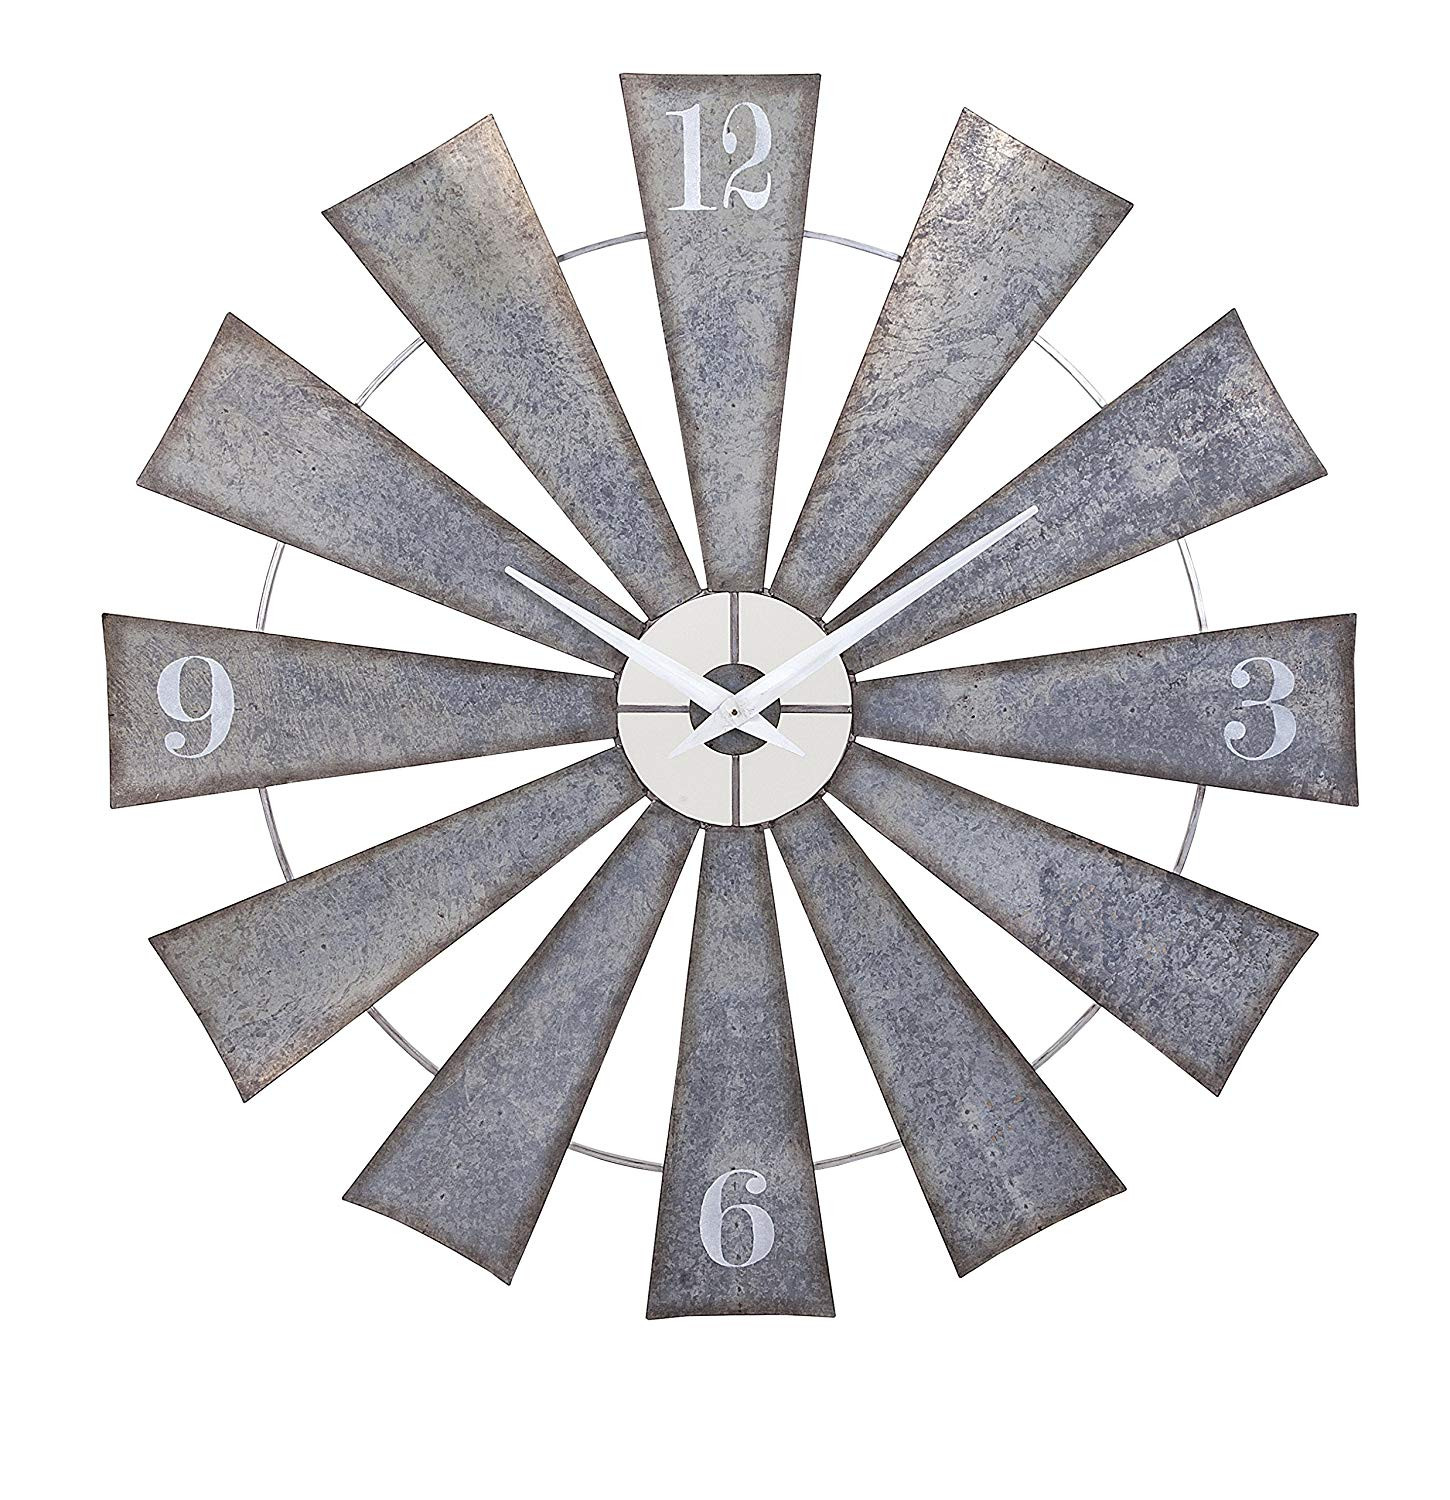 galvanized tin wall vase of amazon com imax 47608 ward metal windmill wall clock round wall within amazon com imax 47608 ward metal windmill wall clock round wall clock in grey arabic numerals vintage inspired oversized analogue clock